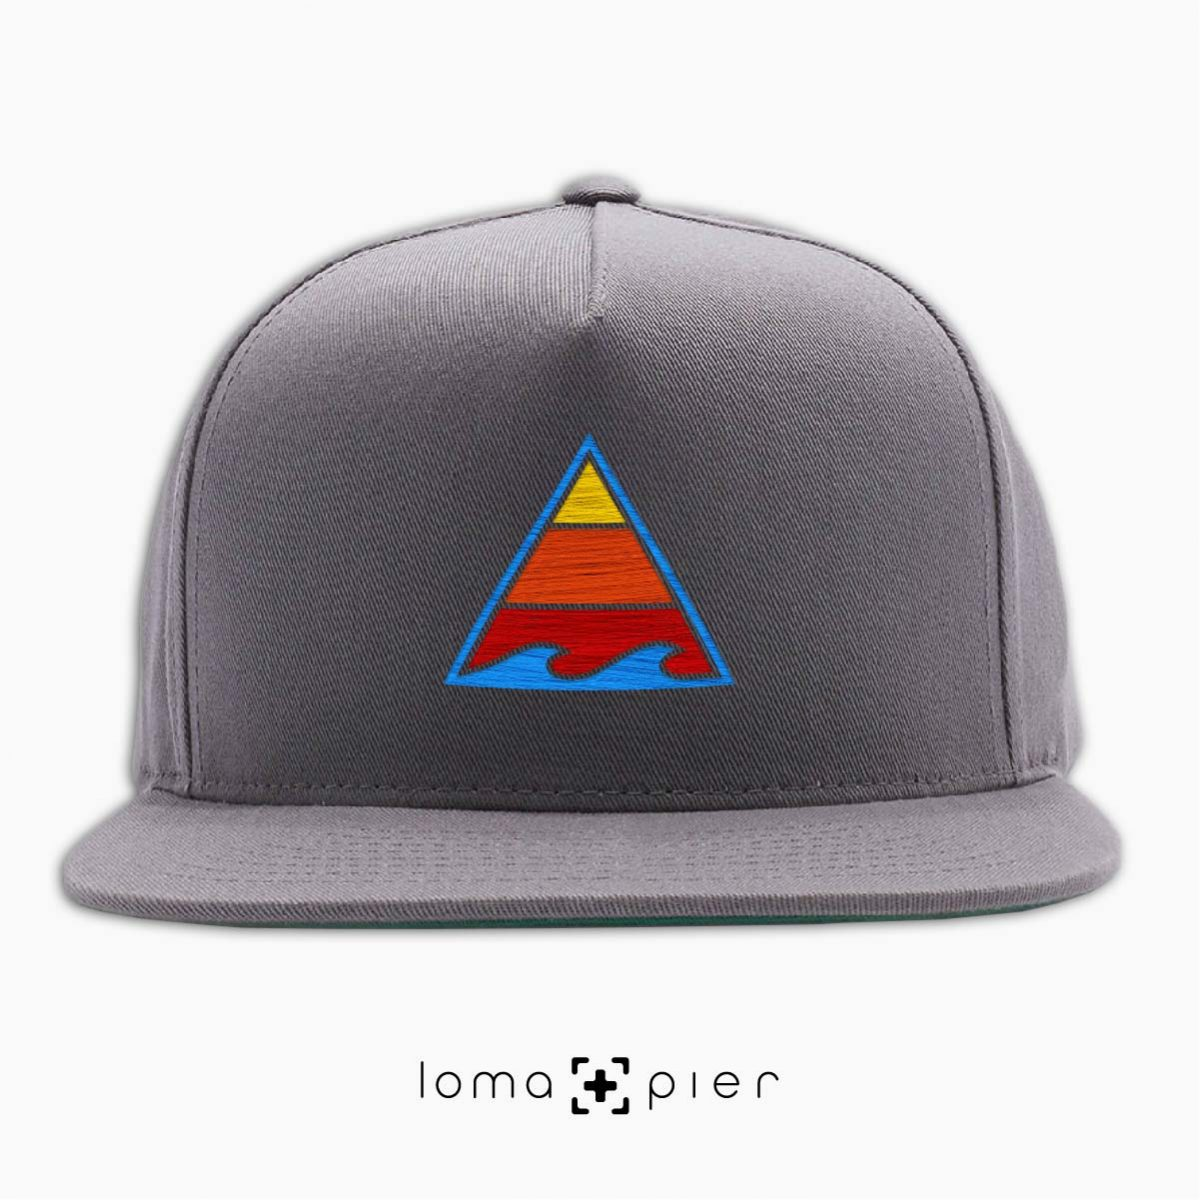 RIDE THAT WAVE hat in grey by loma+pier hat store